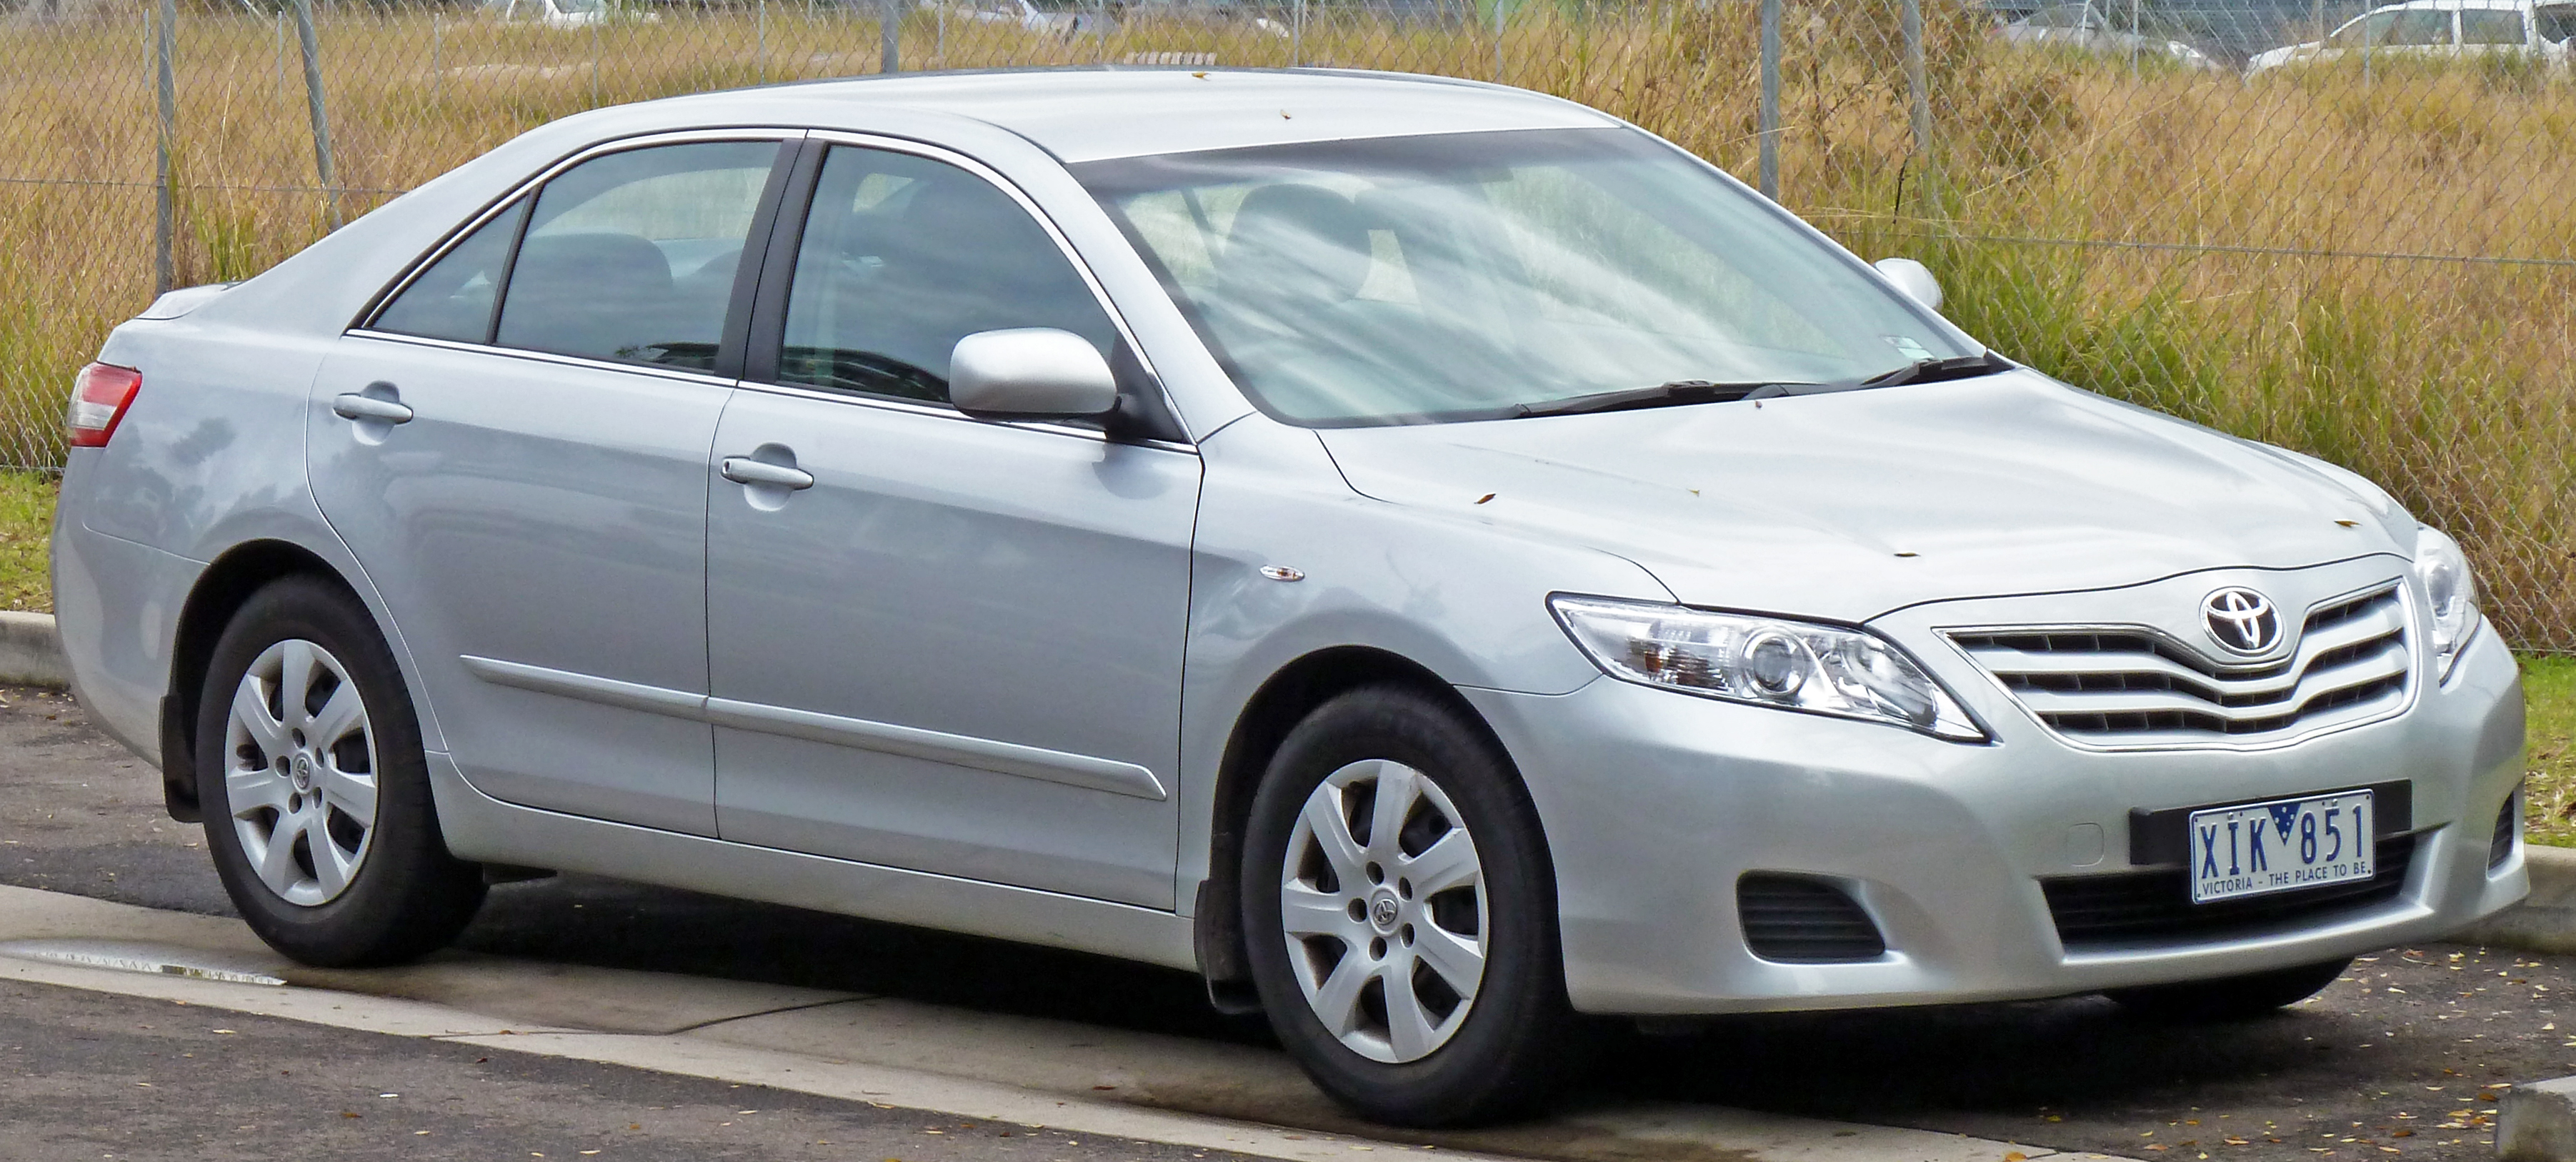 file 2009 toyota camry acv40r my10 altise sedan 2010 07 10 wikimedia commons. Black Bedroom Furniture Sets. Home Design Ideas